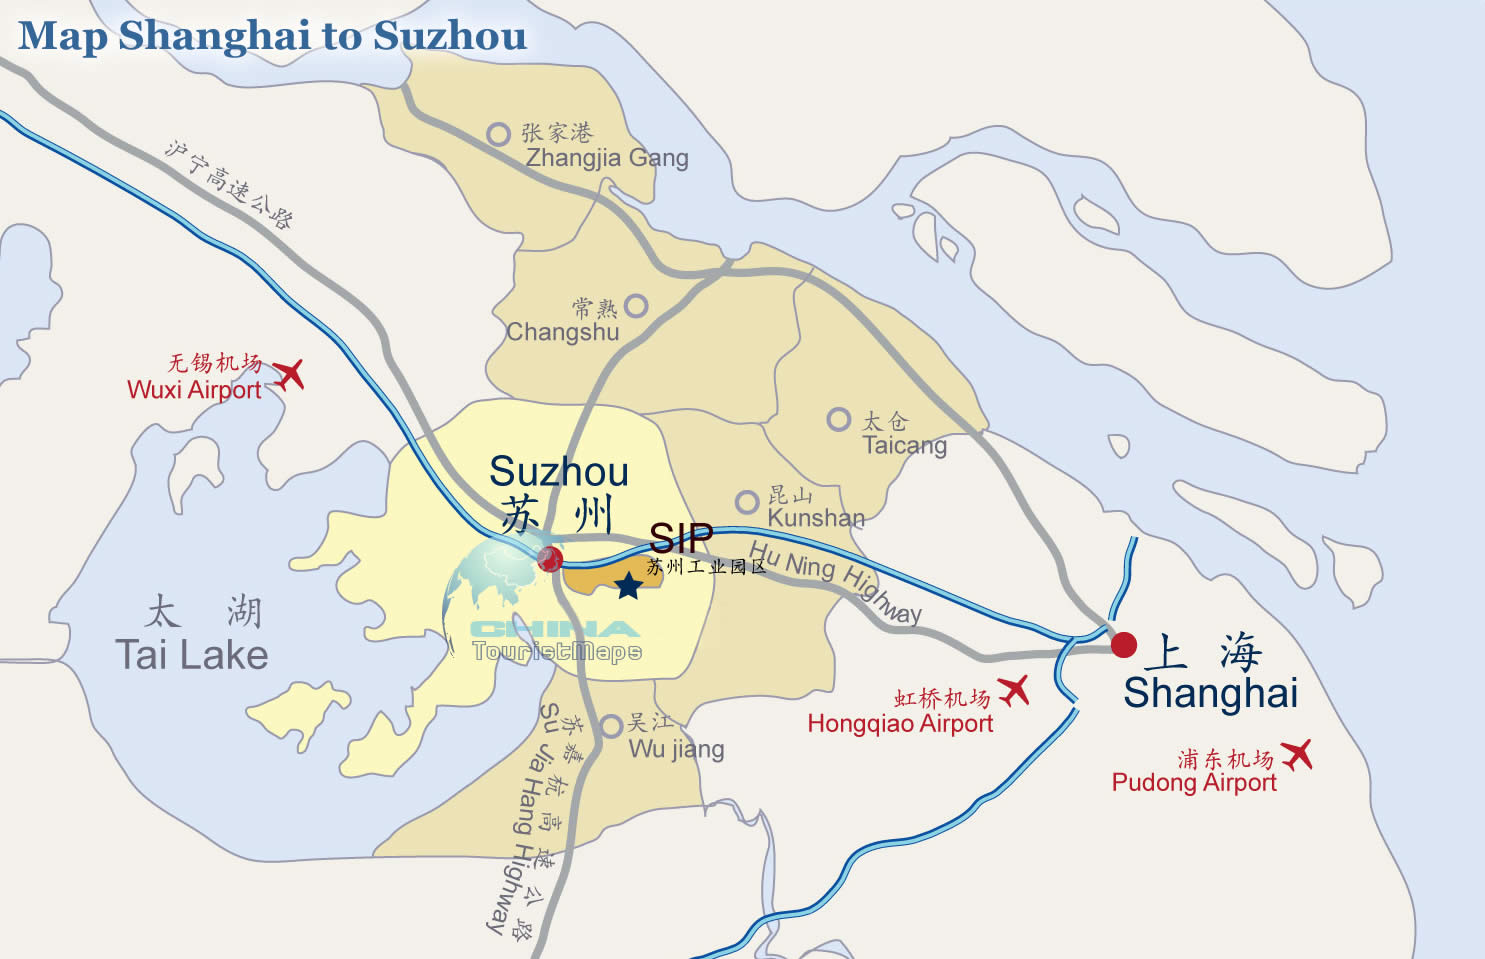 Map Shanghai To Suzhou Distance From Shanghai To Suzhou - Suzhou map